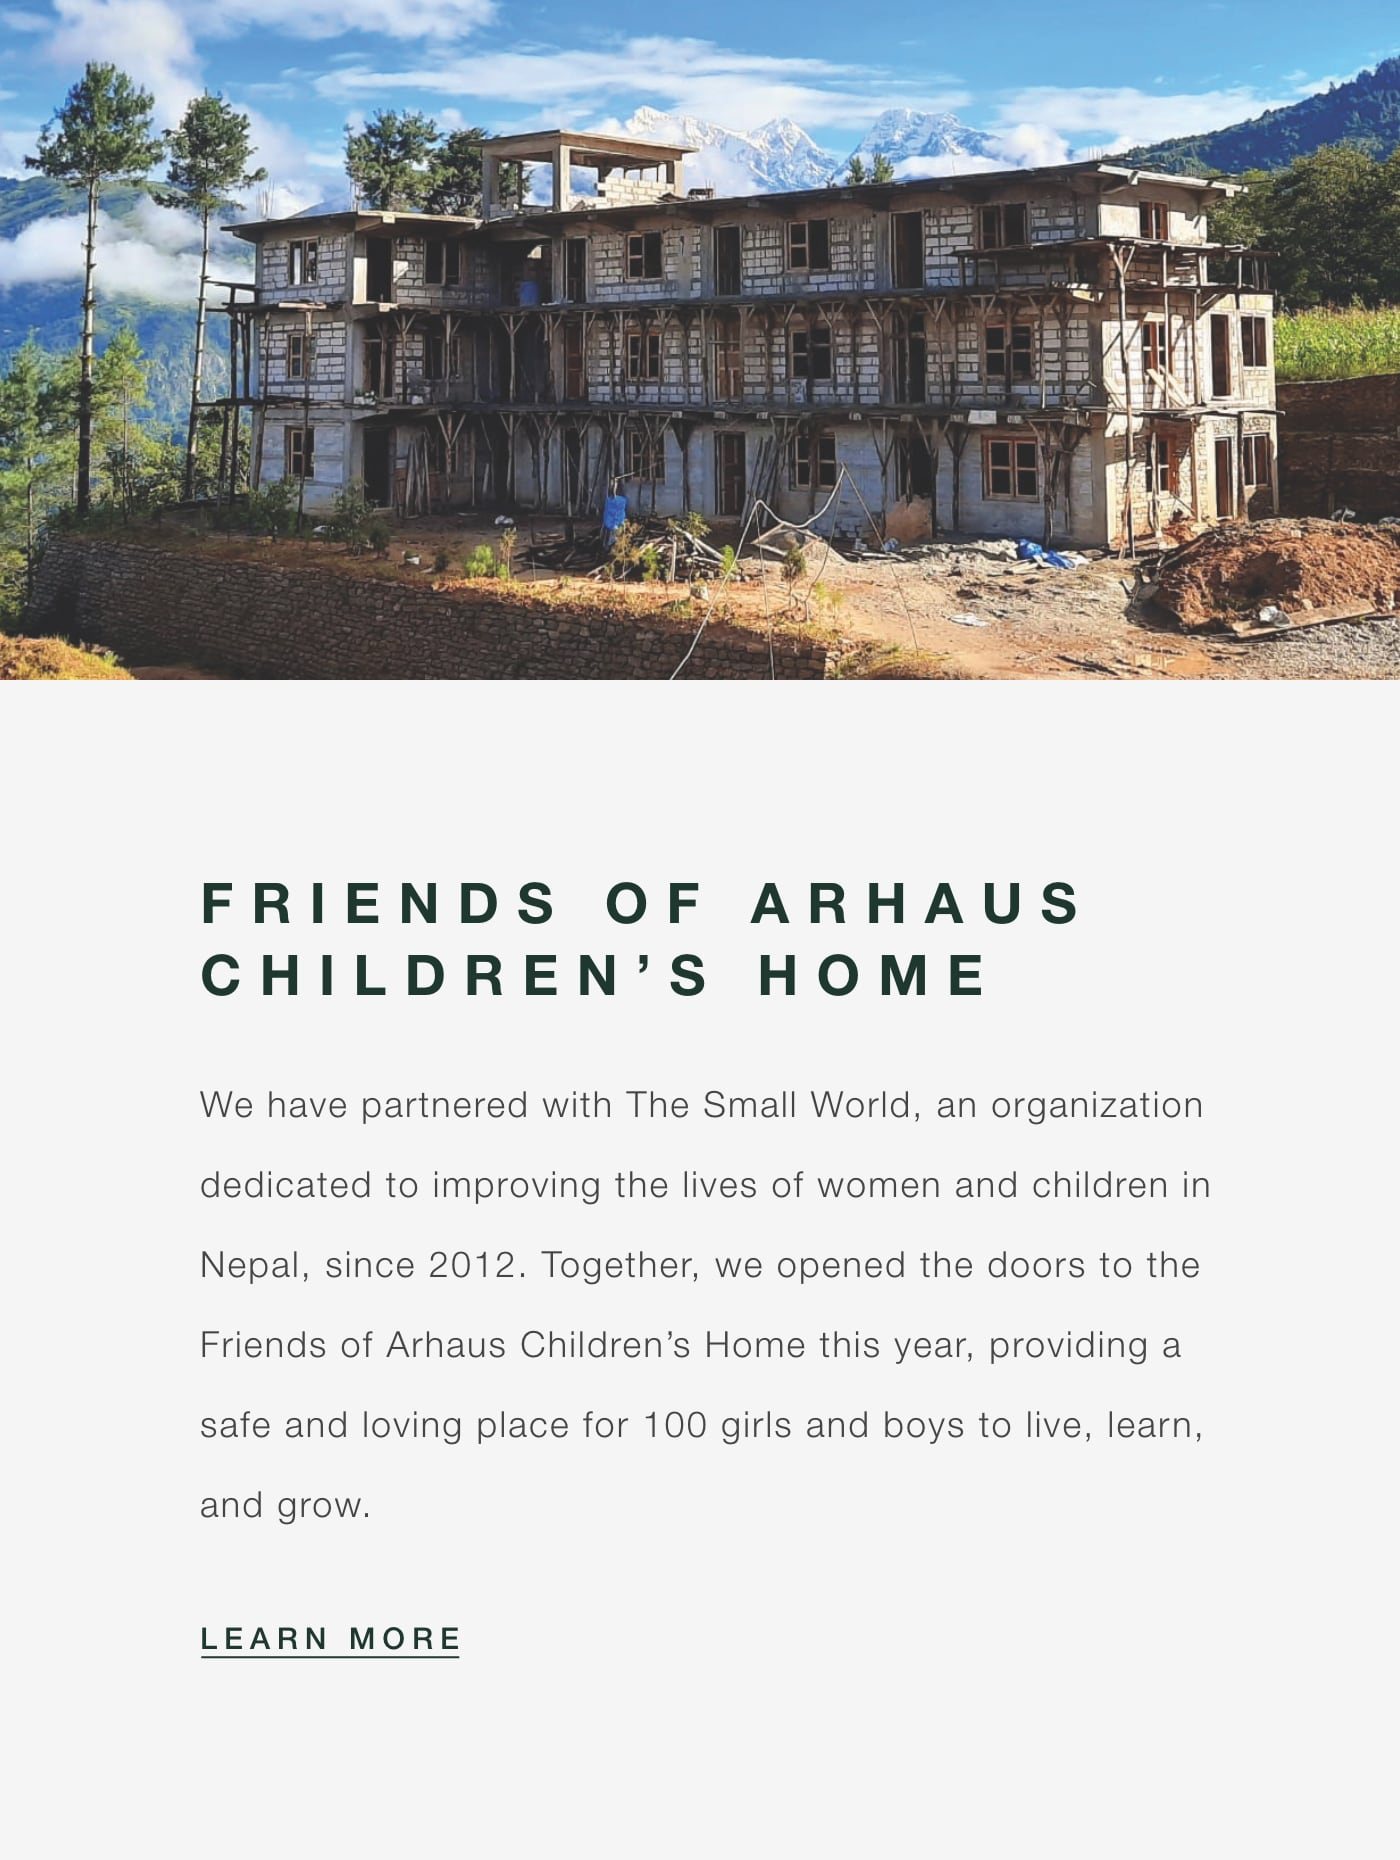 The Small World - Friends of Arhaus Children's Home